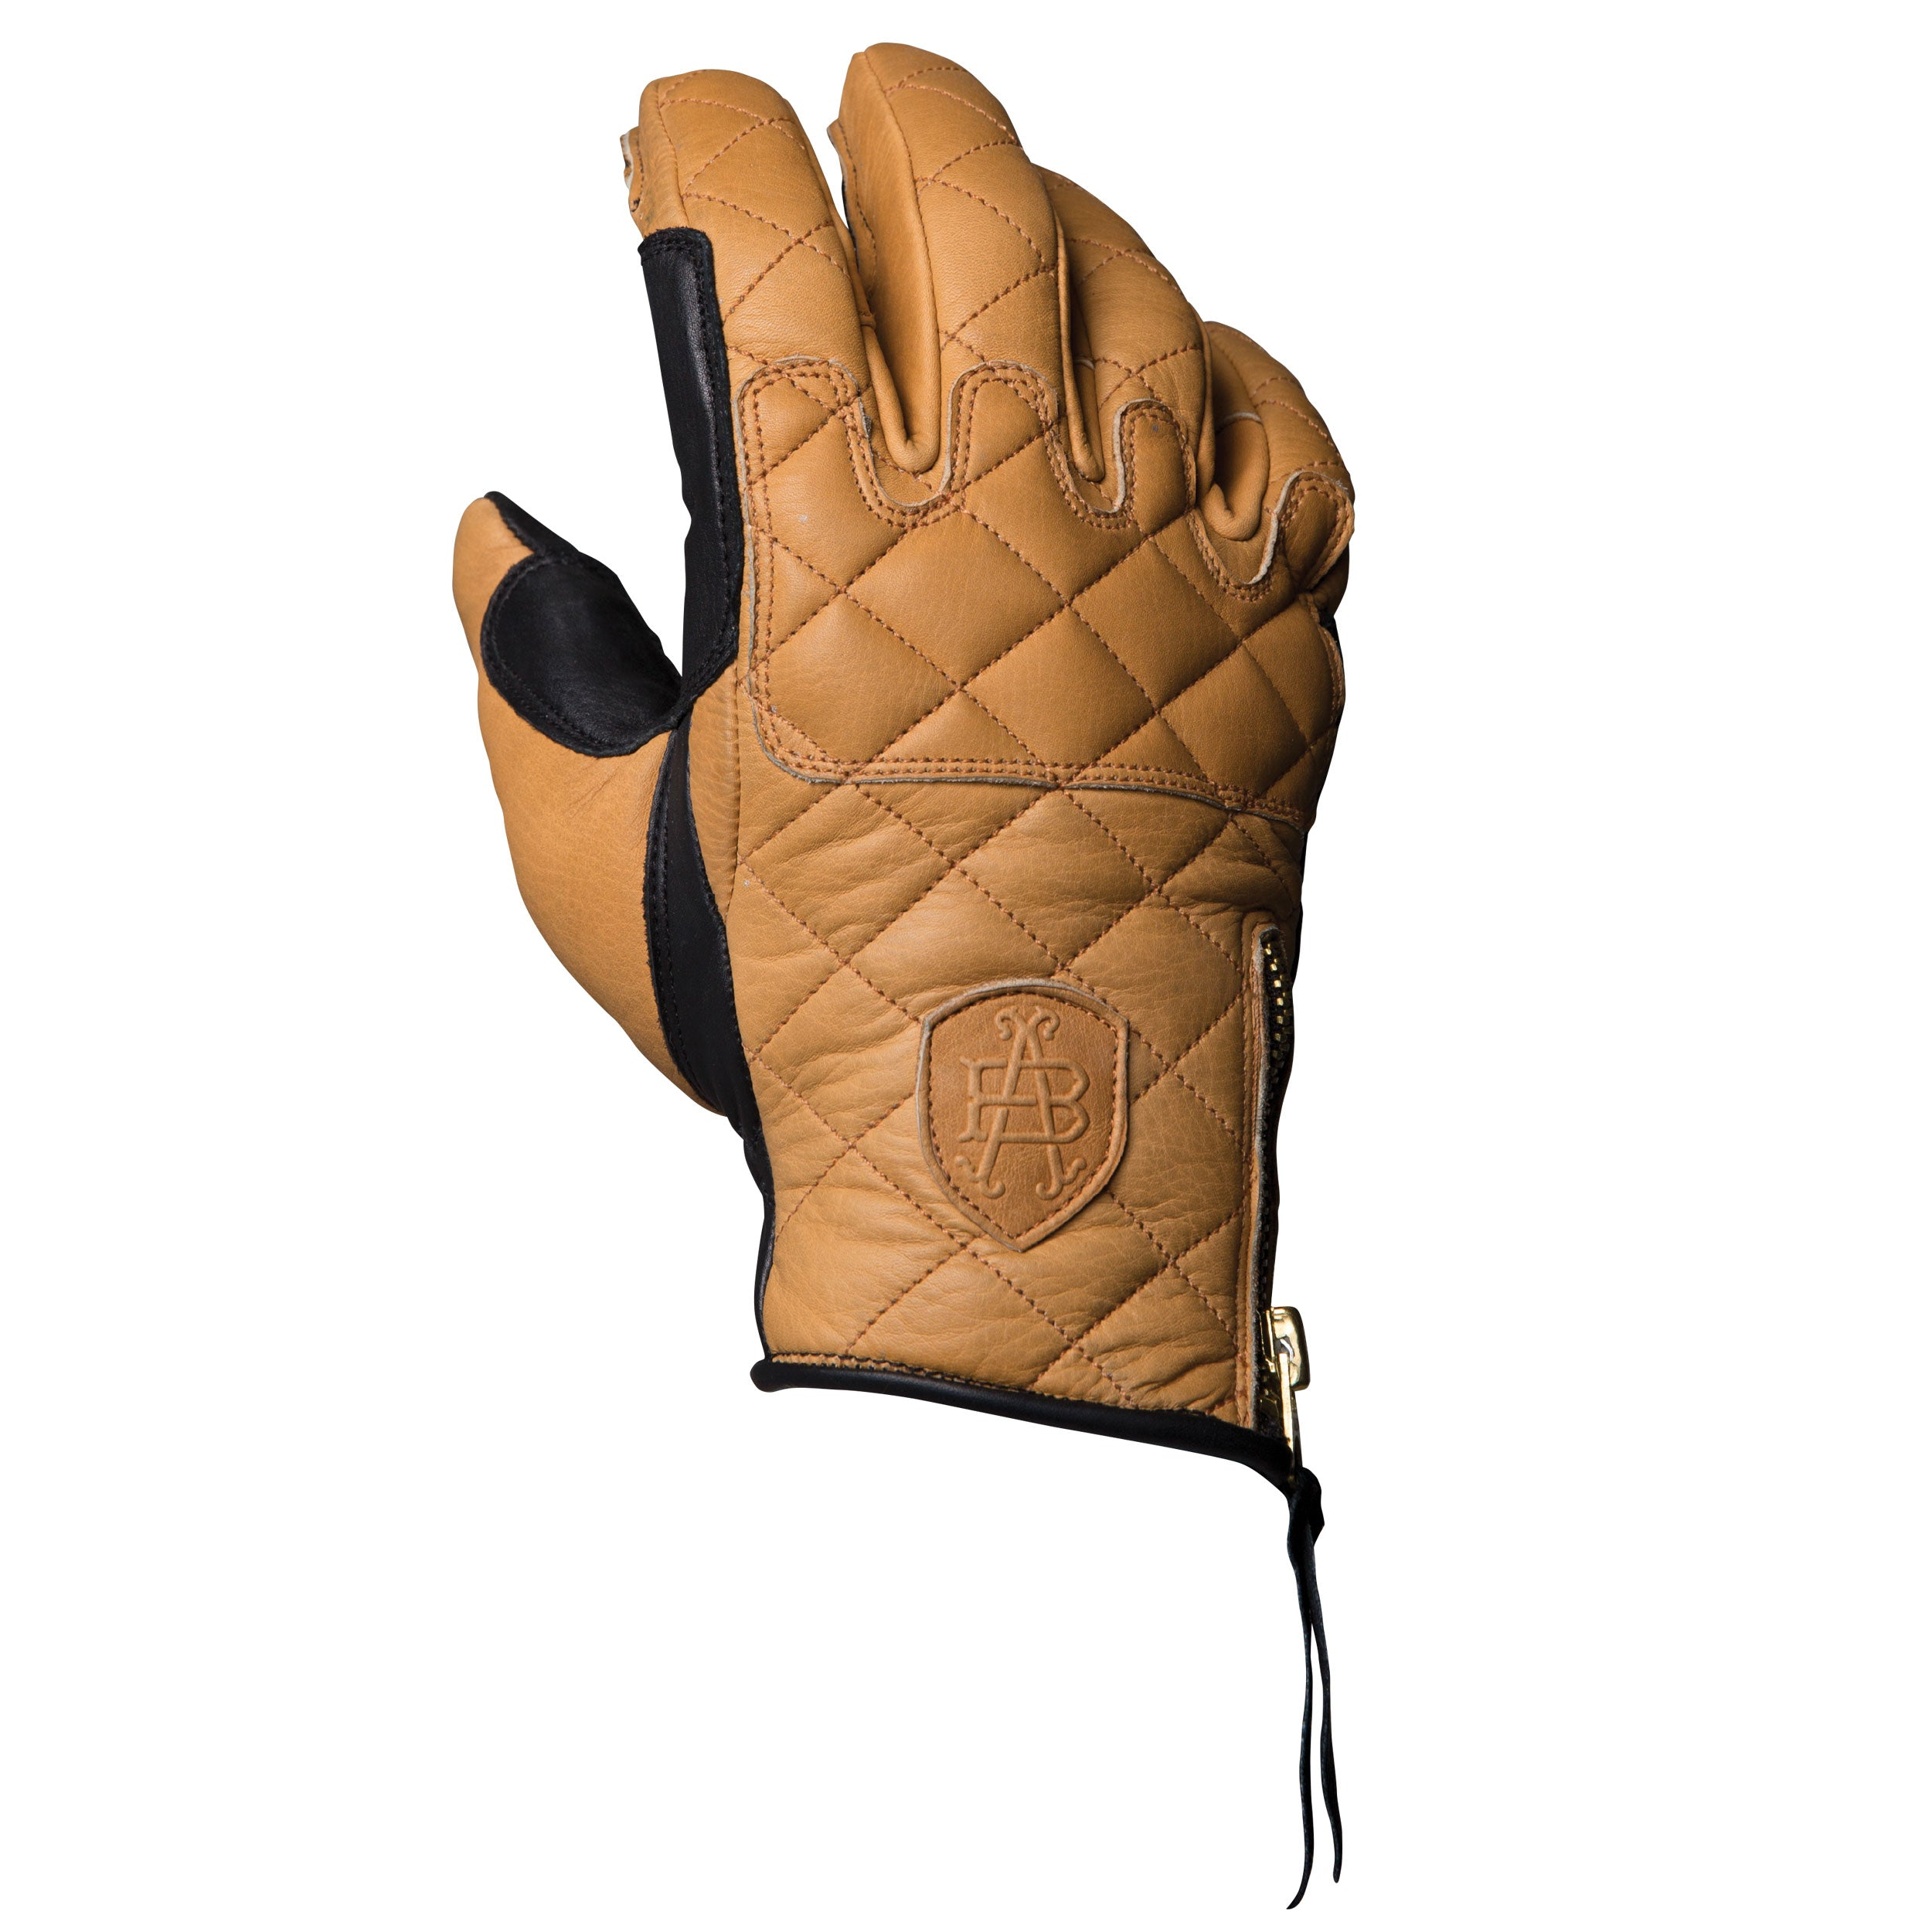 Duster tan and black heritage leather motorcycle glove made with the spirit of iconic desert motorcross racing, this is the back of hand view, and could be worn on motox, chopper riding, cafe racer, tracker, brat style, or adventure bike